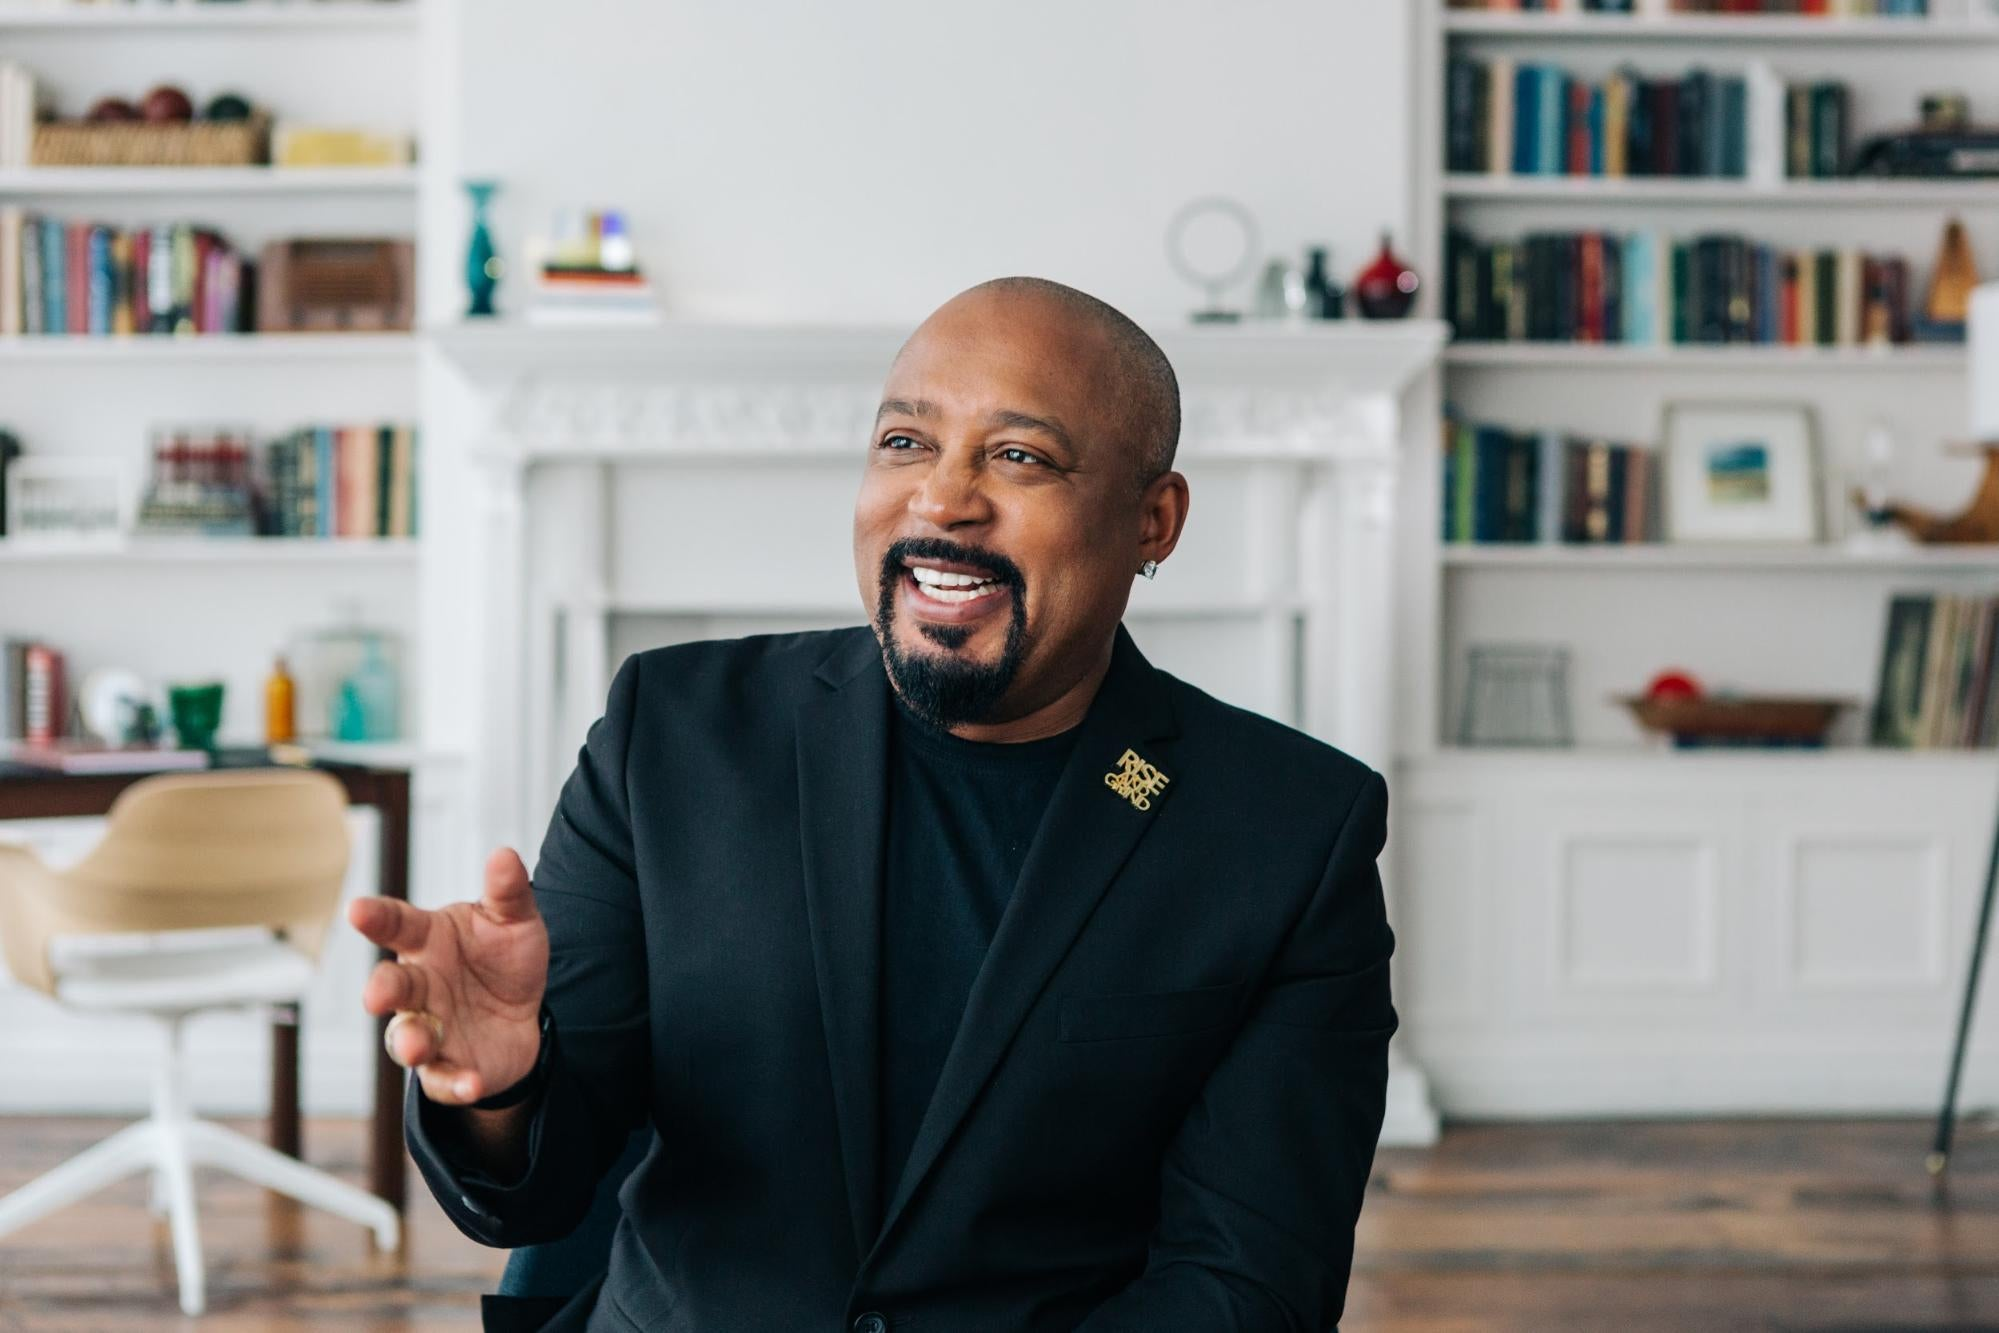 Daymond John was all smiles after selling his $2 million house for $8 million